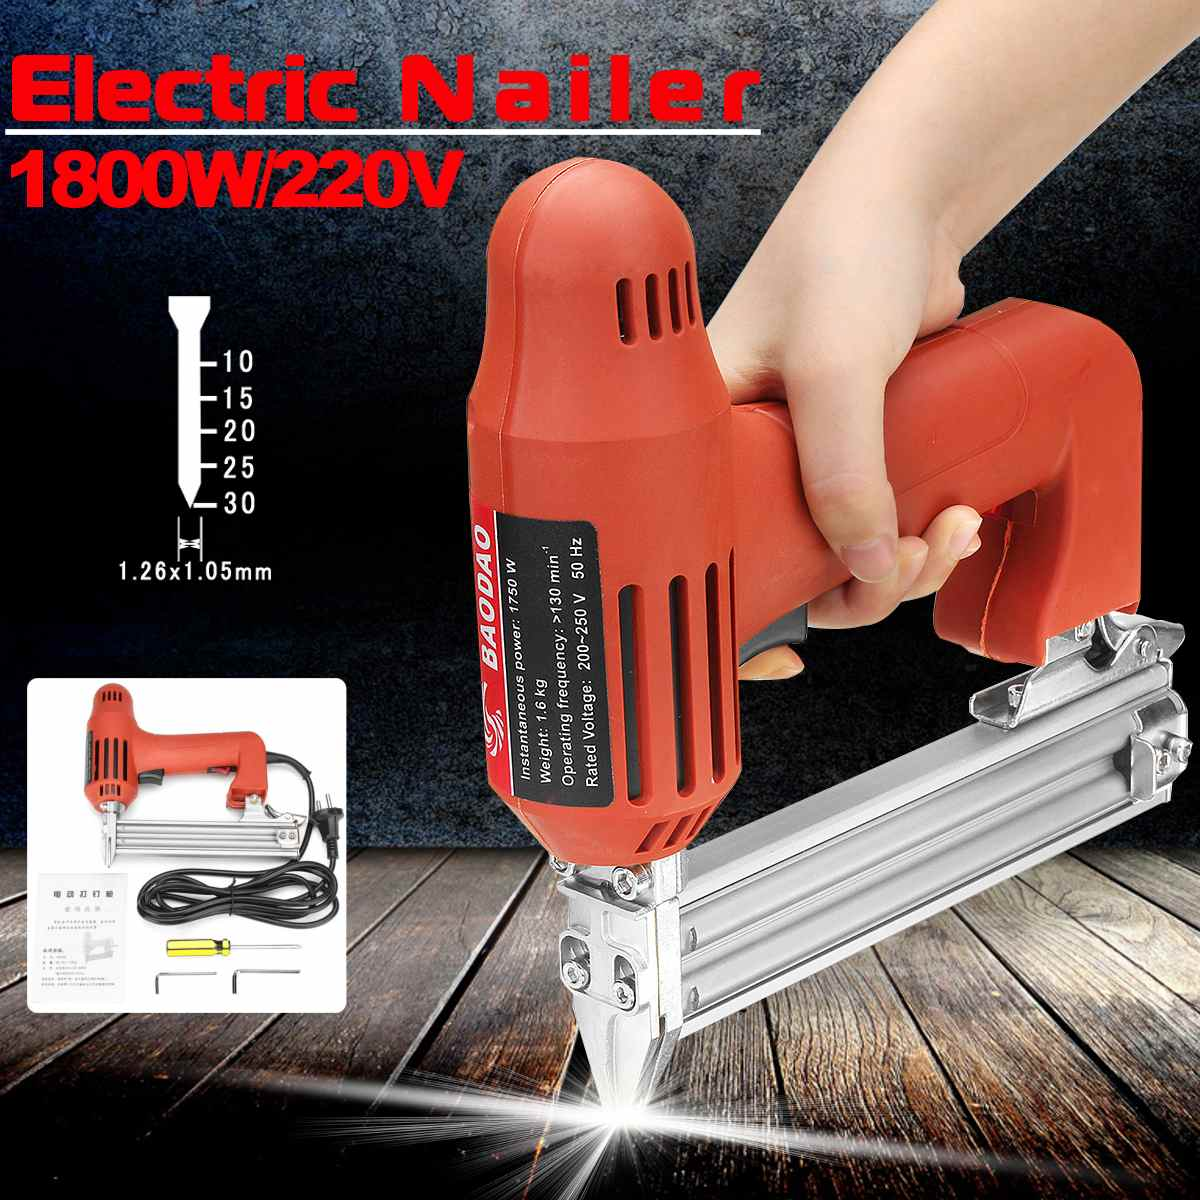 10-30mm 220V 1800W Electric Nailer Straight Nail Staple Guns Woodworking Tool Light Weight Portable 60/min Firing Speed Rate